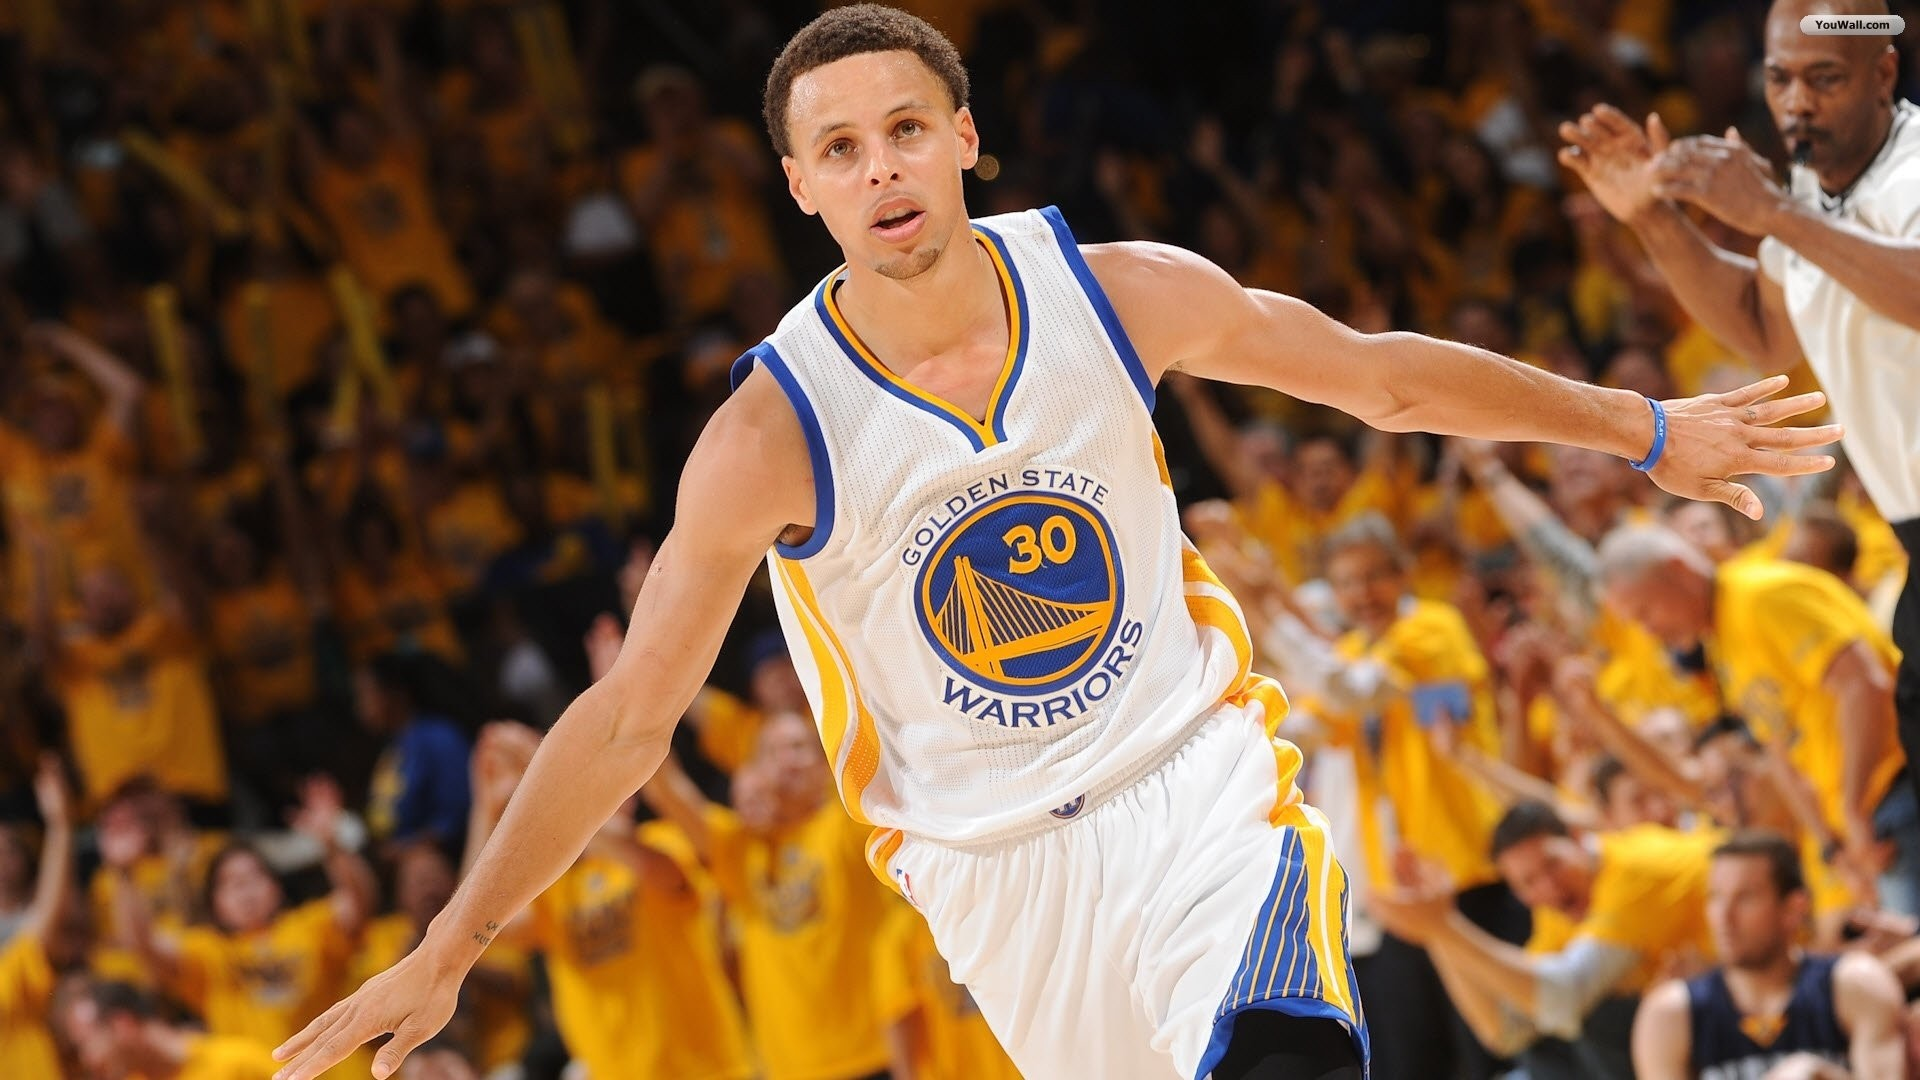 Curry Free Wallpaper and Background